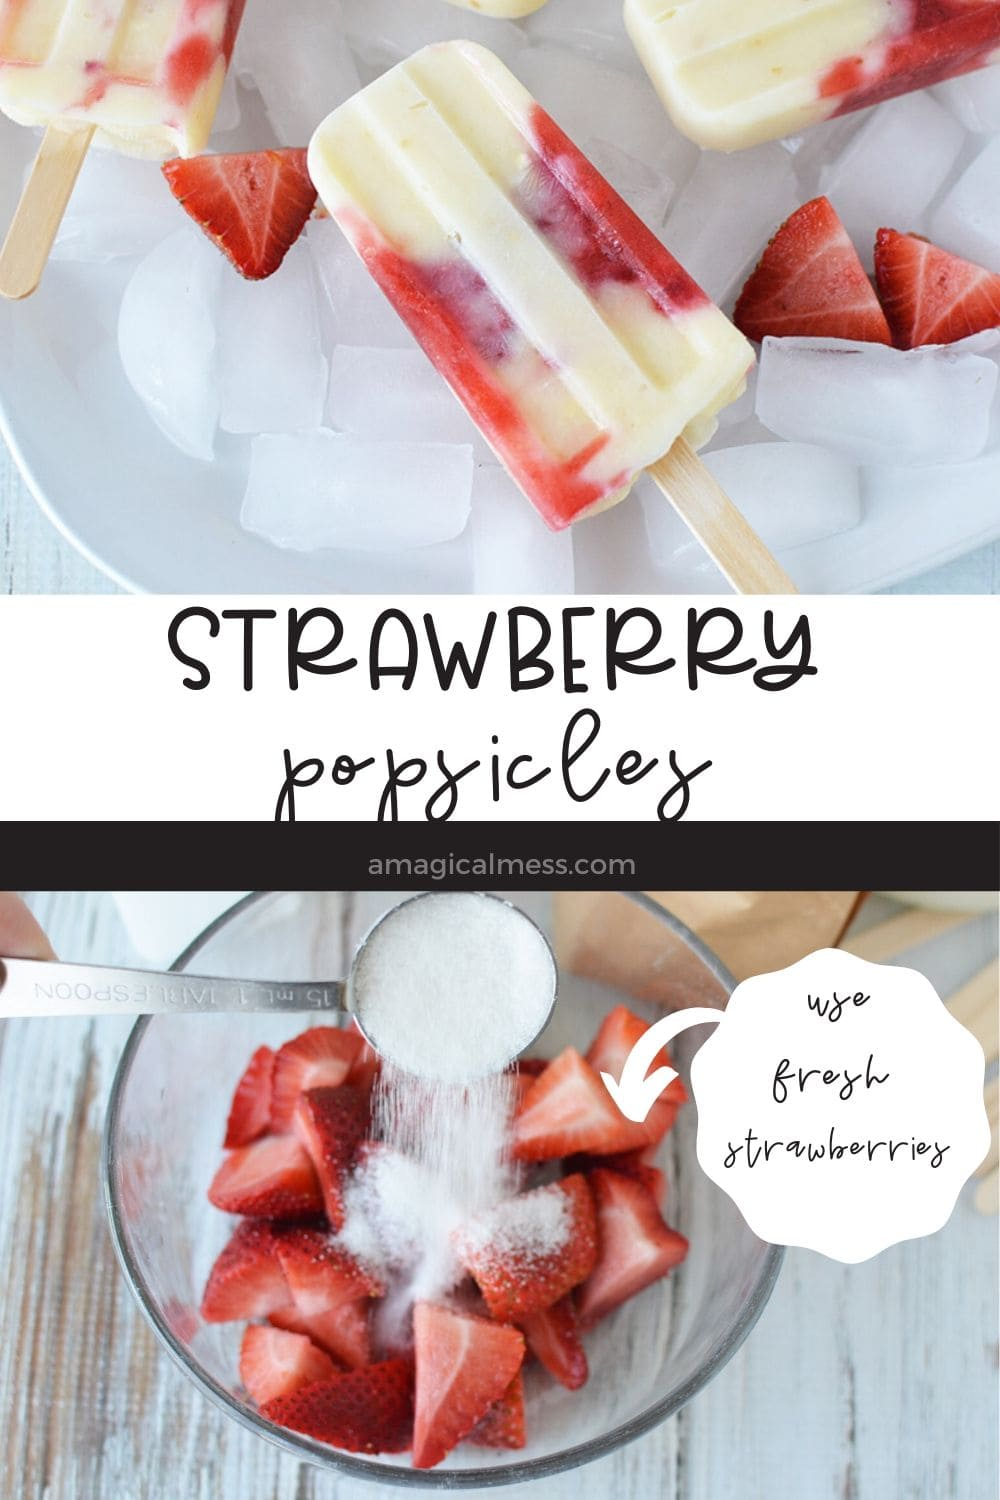 popsicles on ice and strawberries in food processor